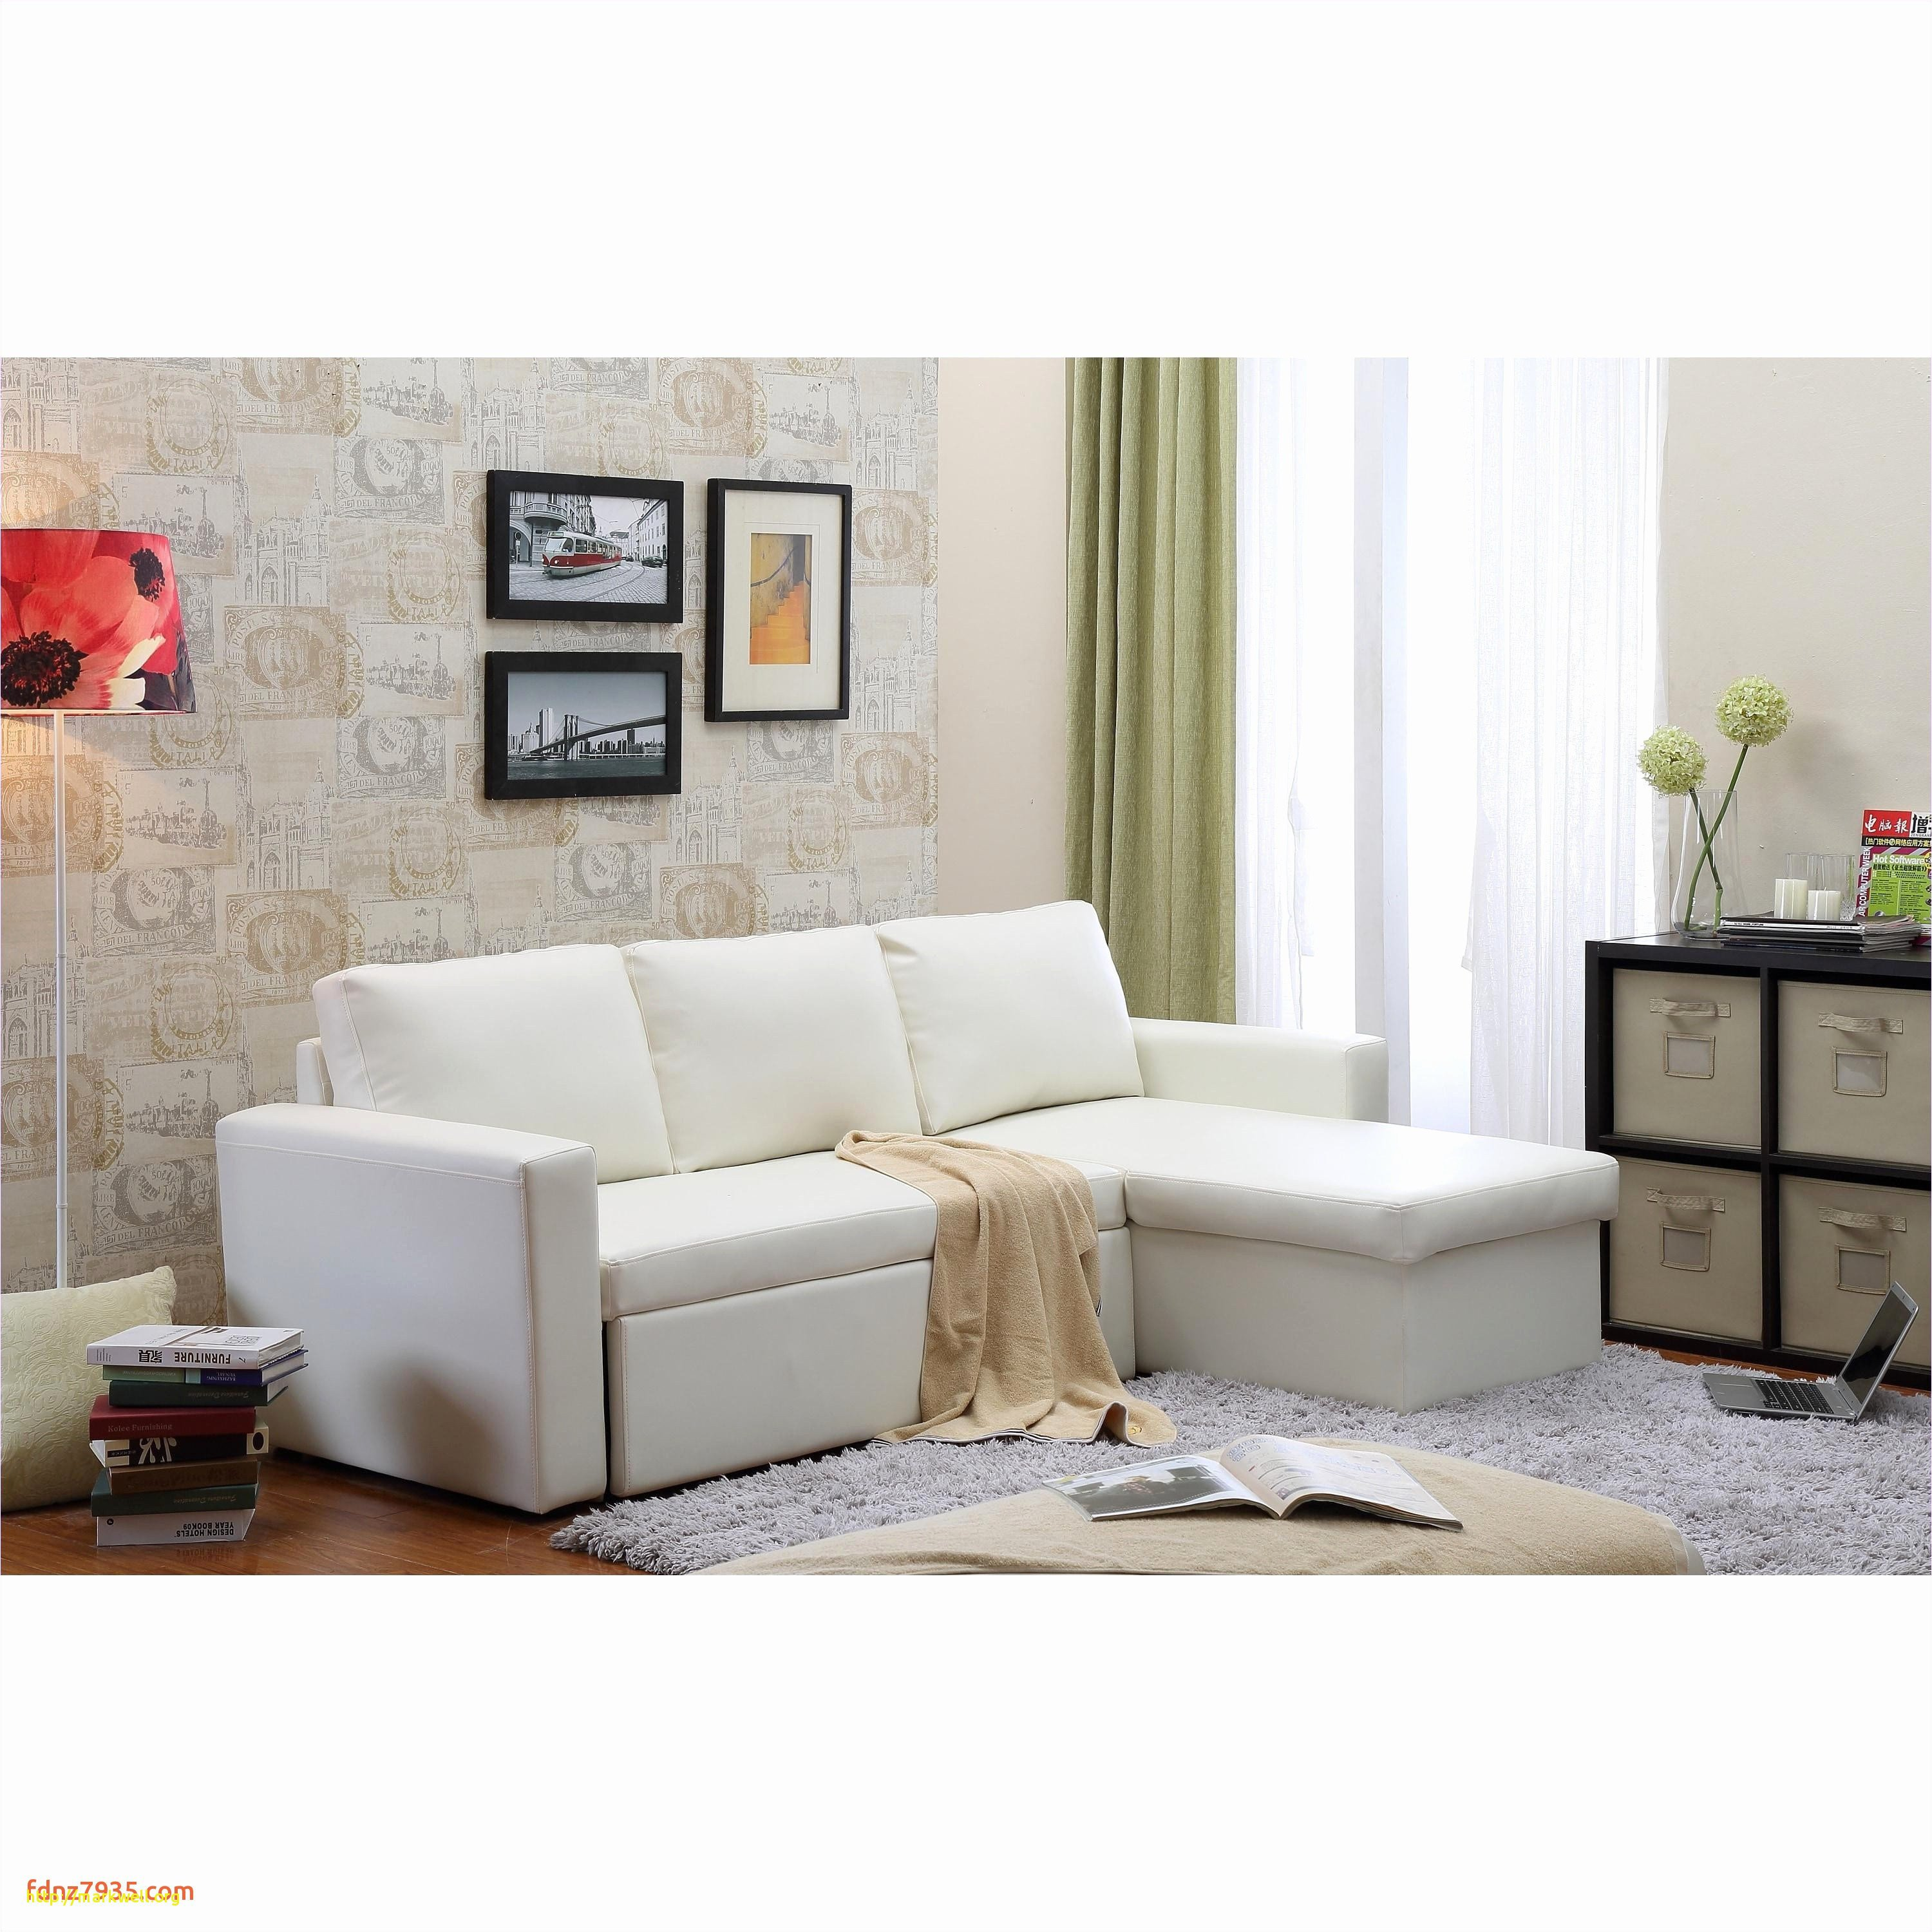 Bob Discount Furniture Bedroom Set Luxury Awesome Bobs Living Room Furniture